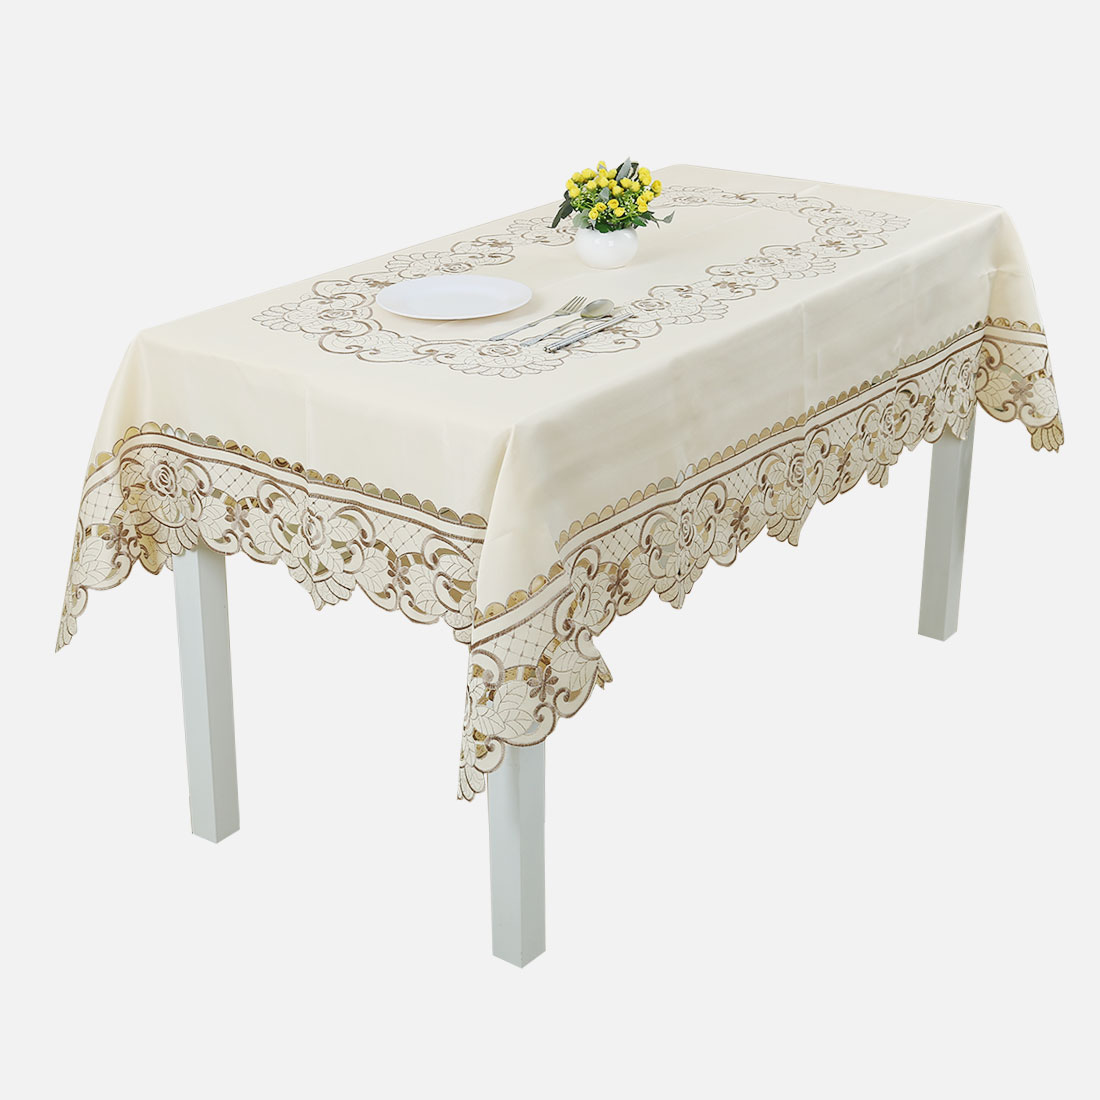 Light Beige Rose Flower Embroidered Lace Table Cover Tablecloth 175cm X  320cm